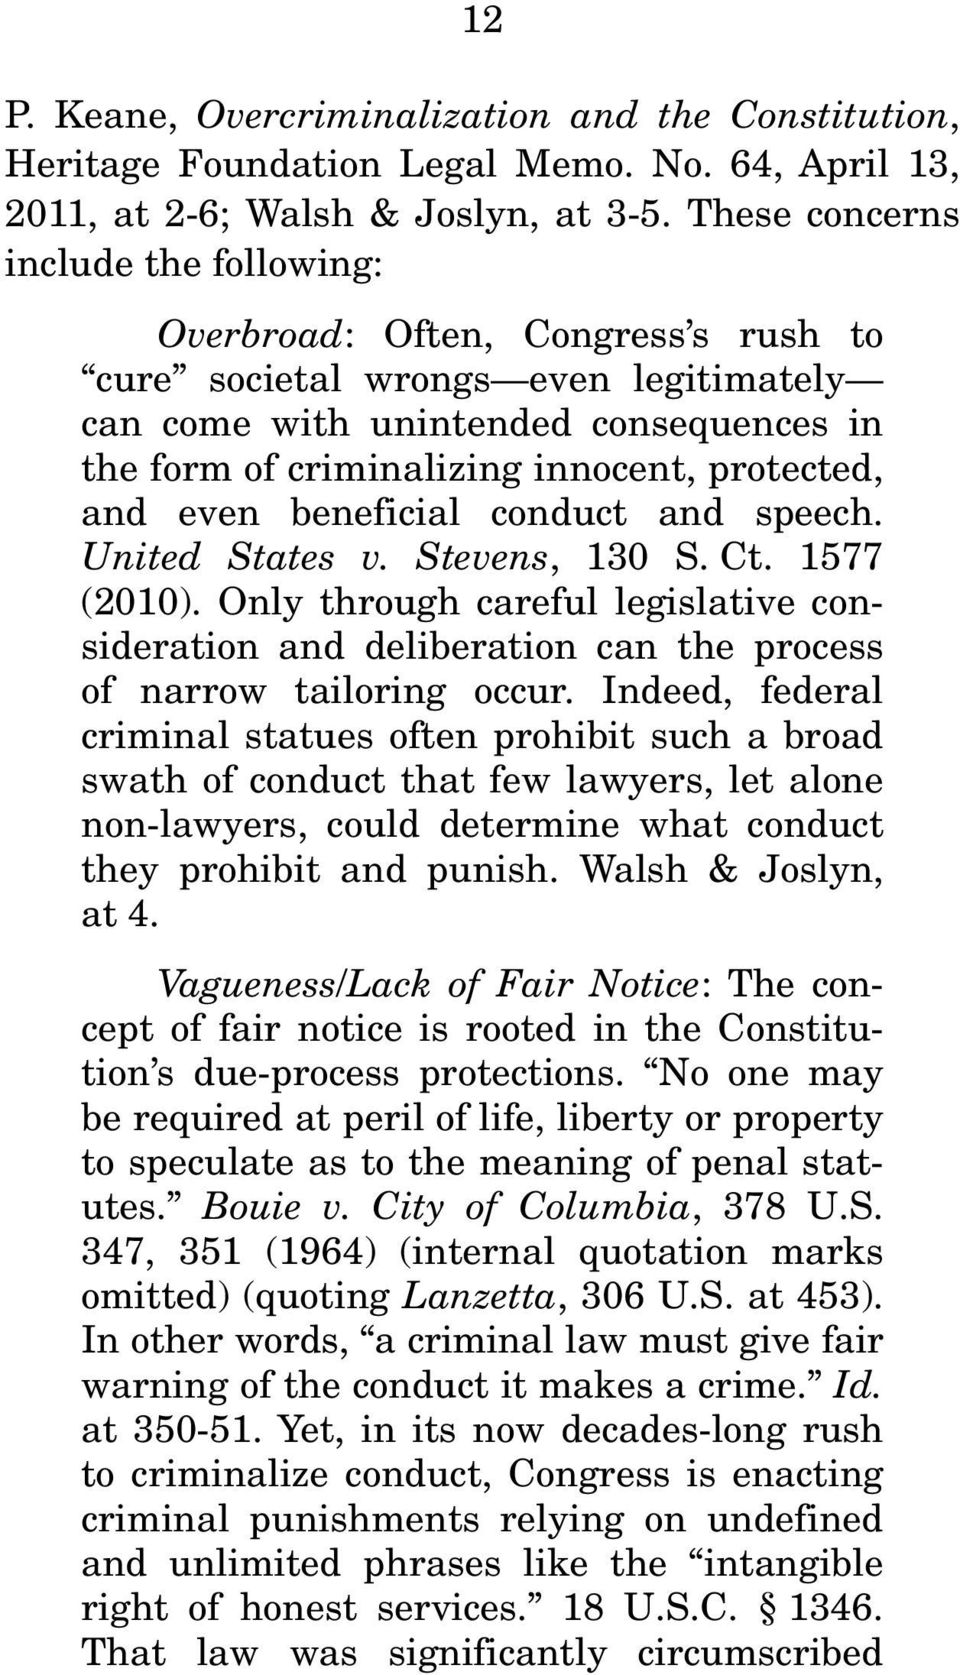 protected, and even beneficial conduct and speech. United States v. Stevens, 130 S. Ct. 1577 (2010).